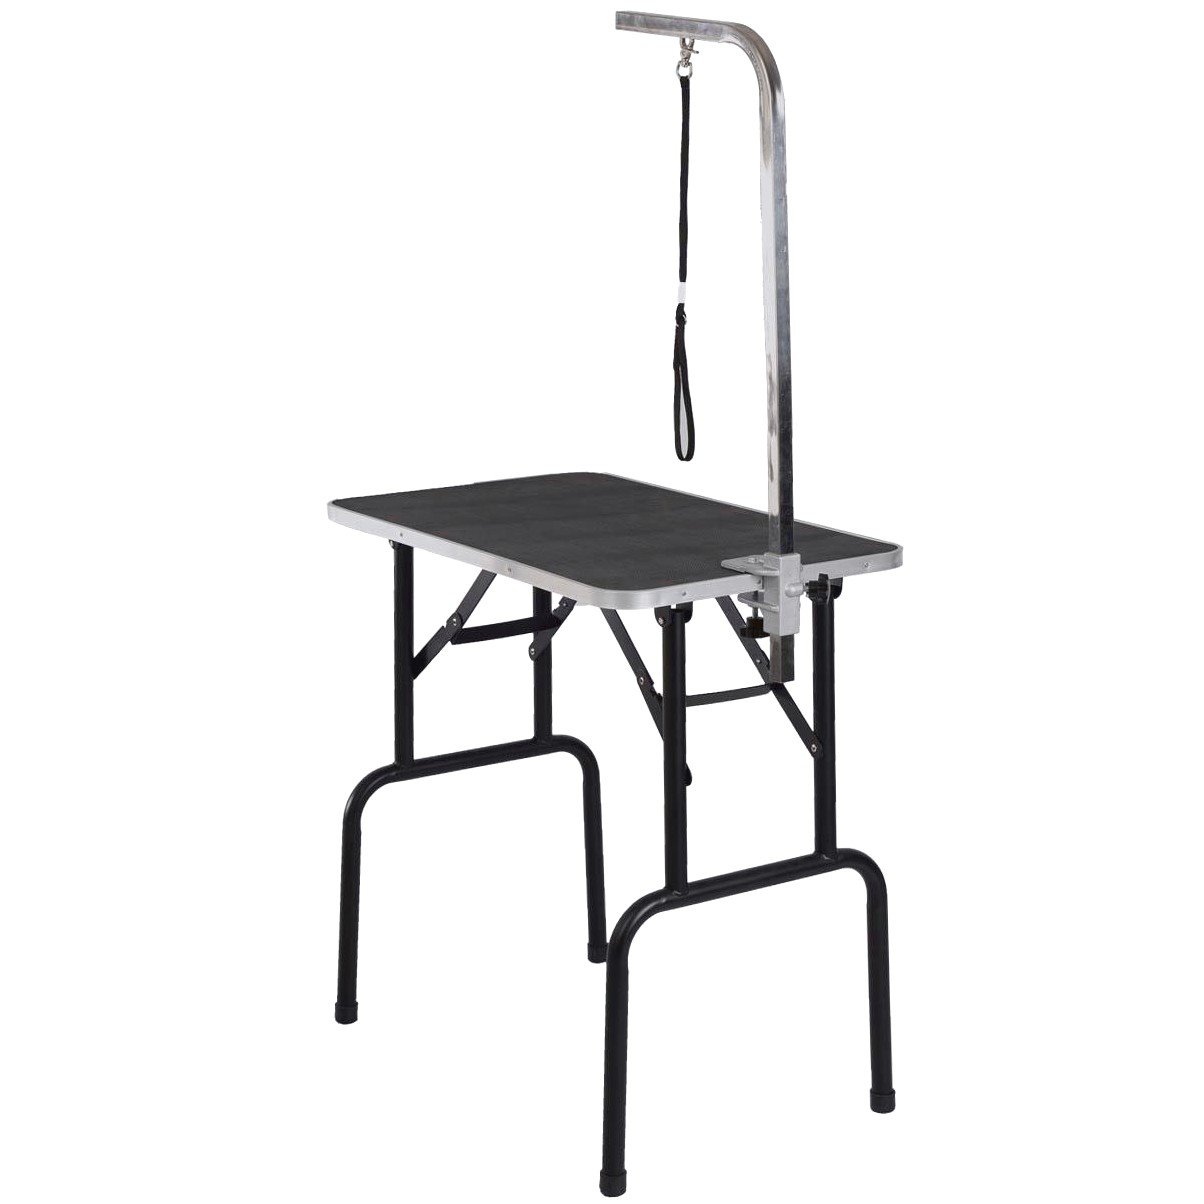 grooming tables for show dogs